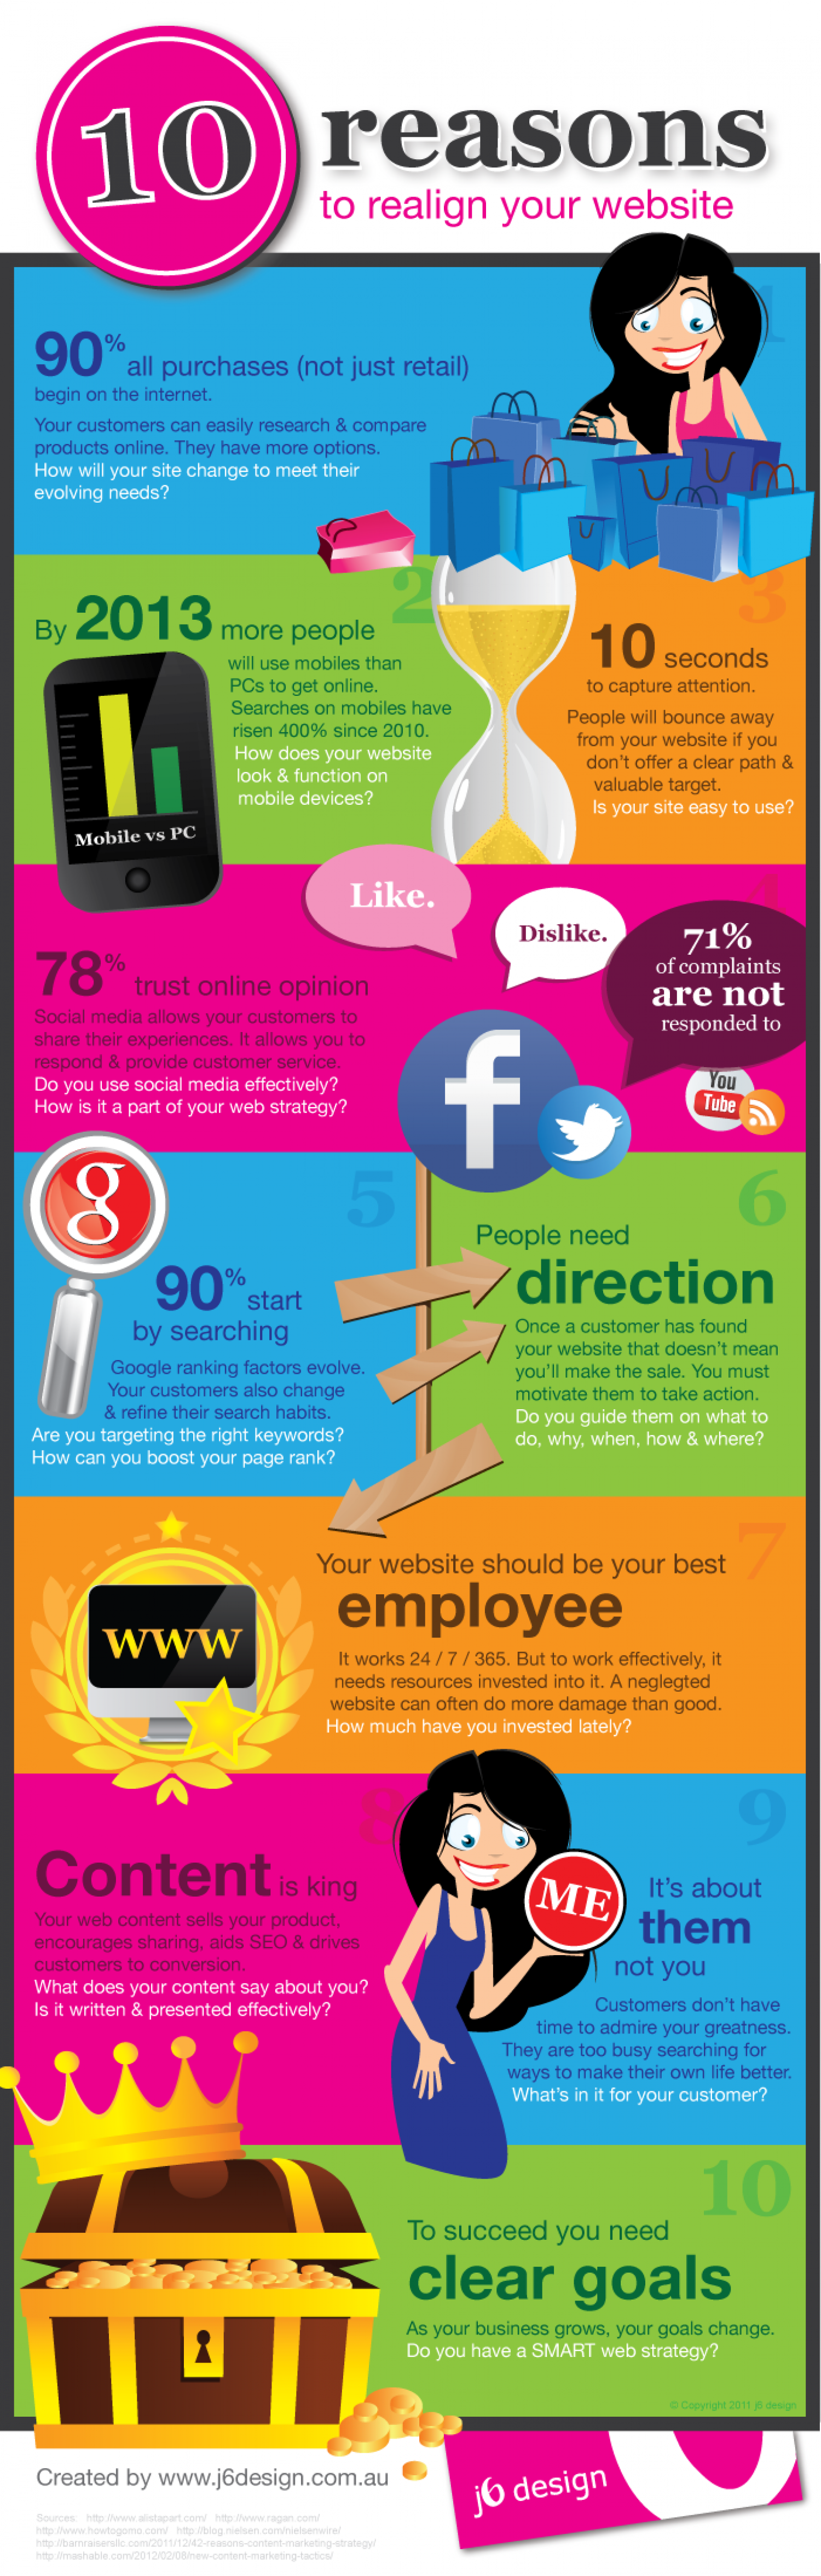 10 reasons to realign your website  Infographic